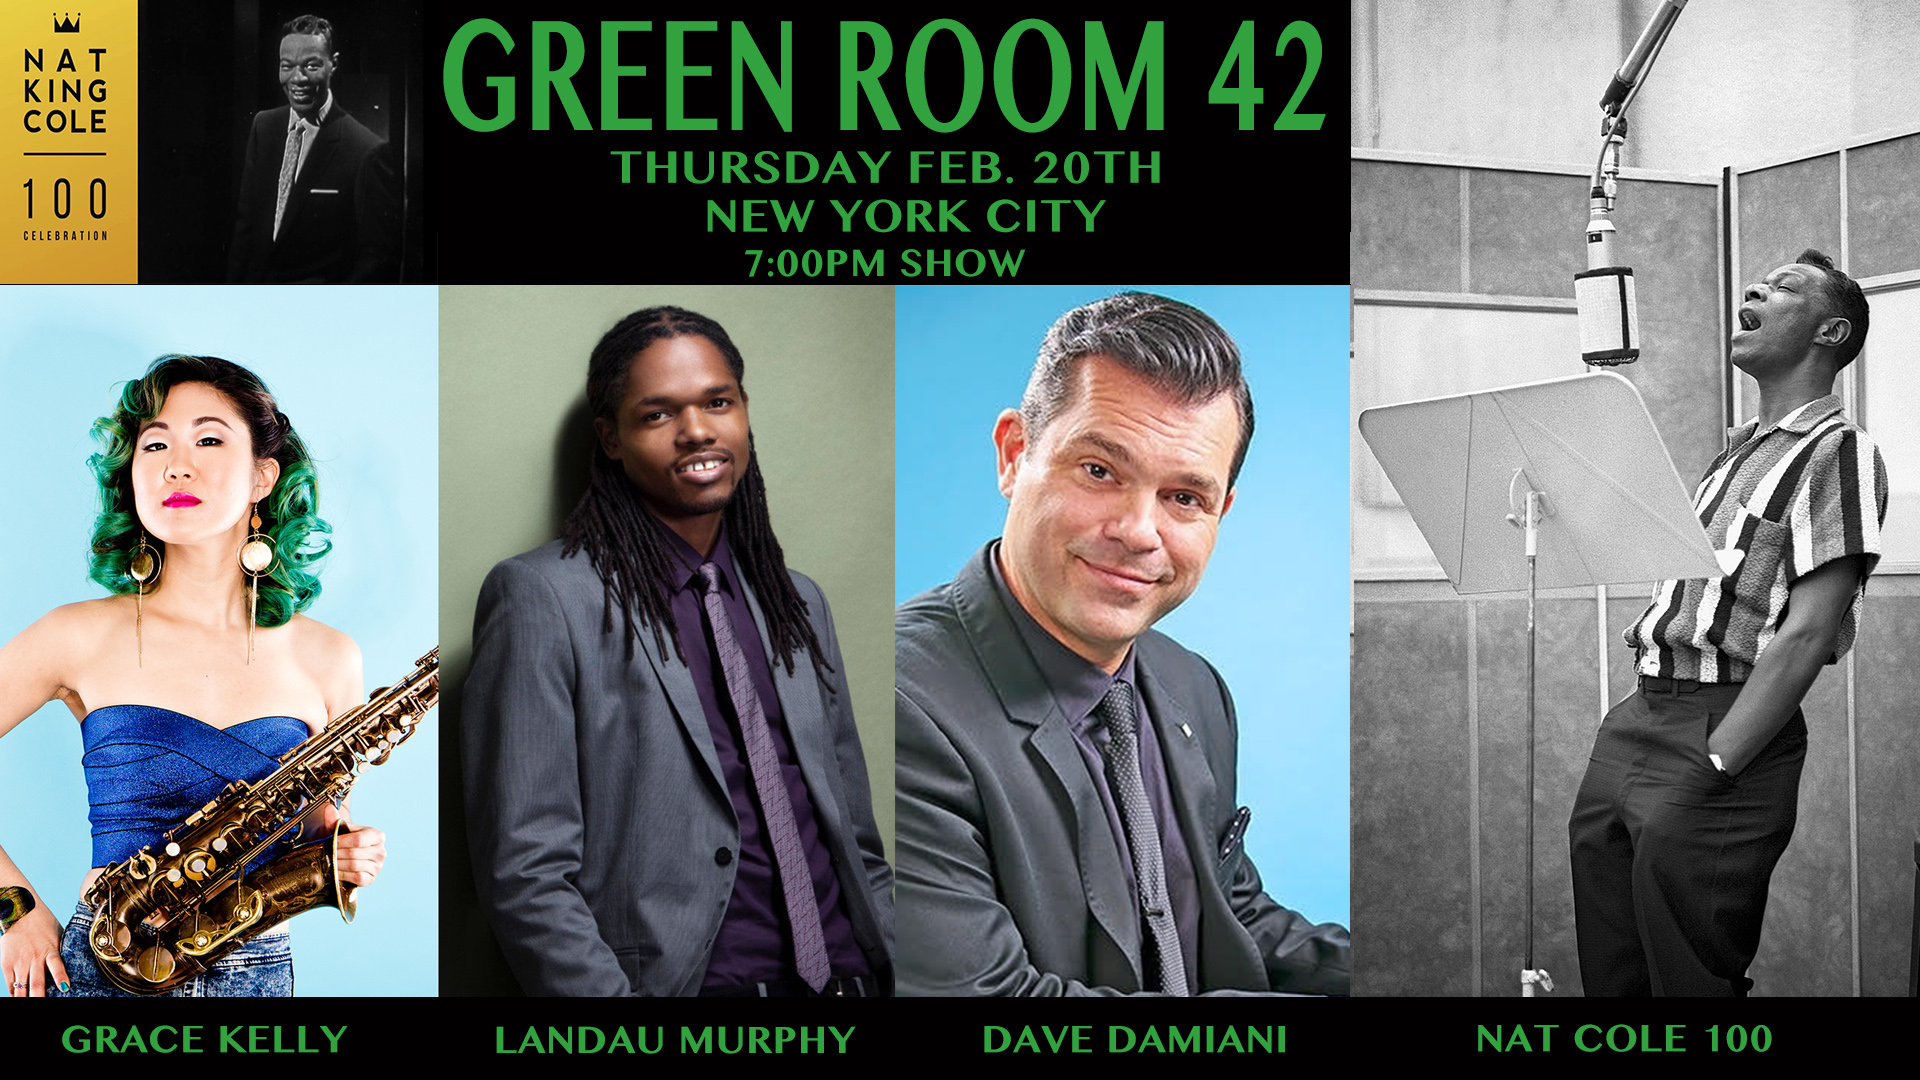 NAT COLE 100 - NEW YORK CITY